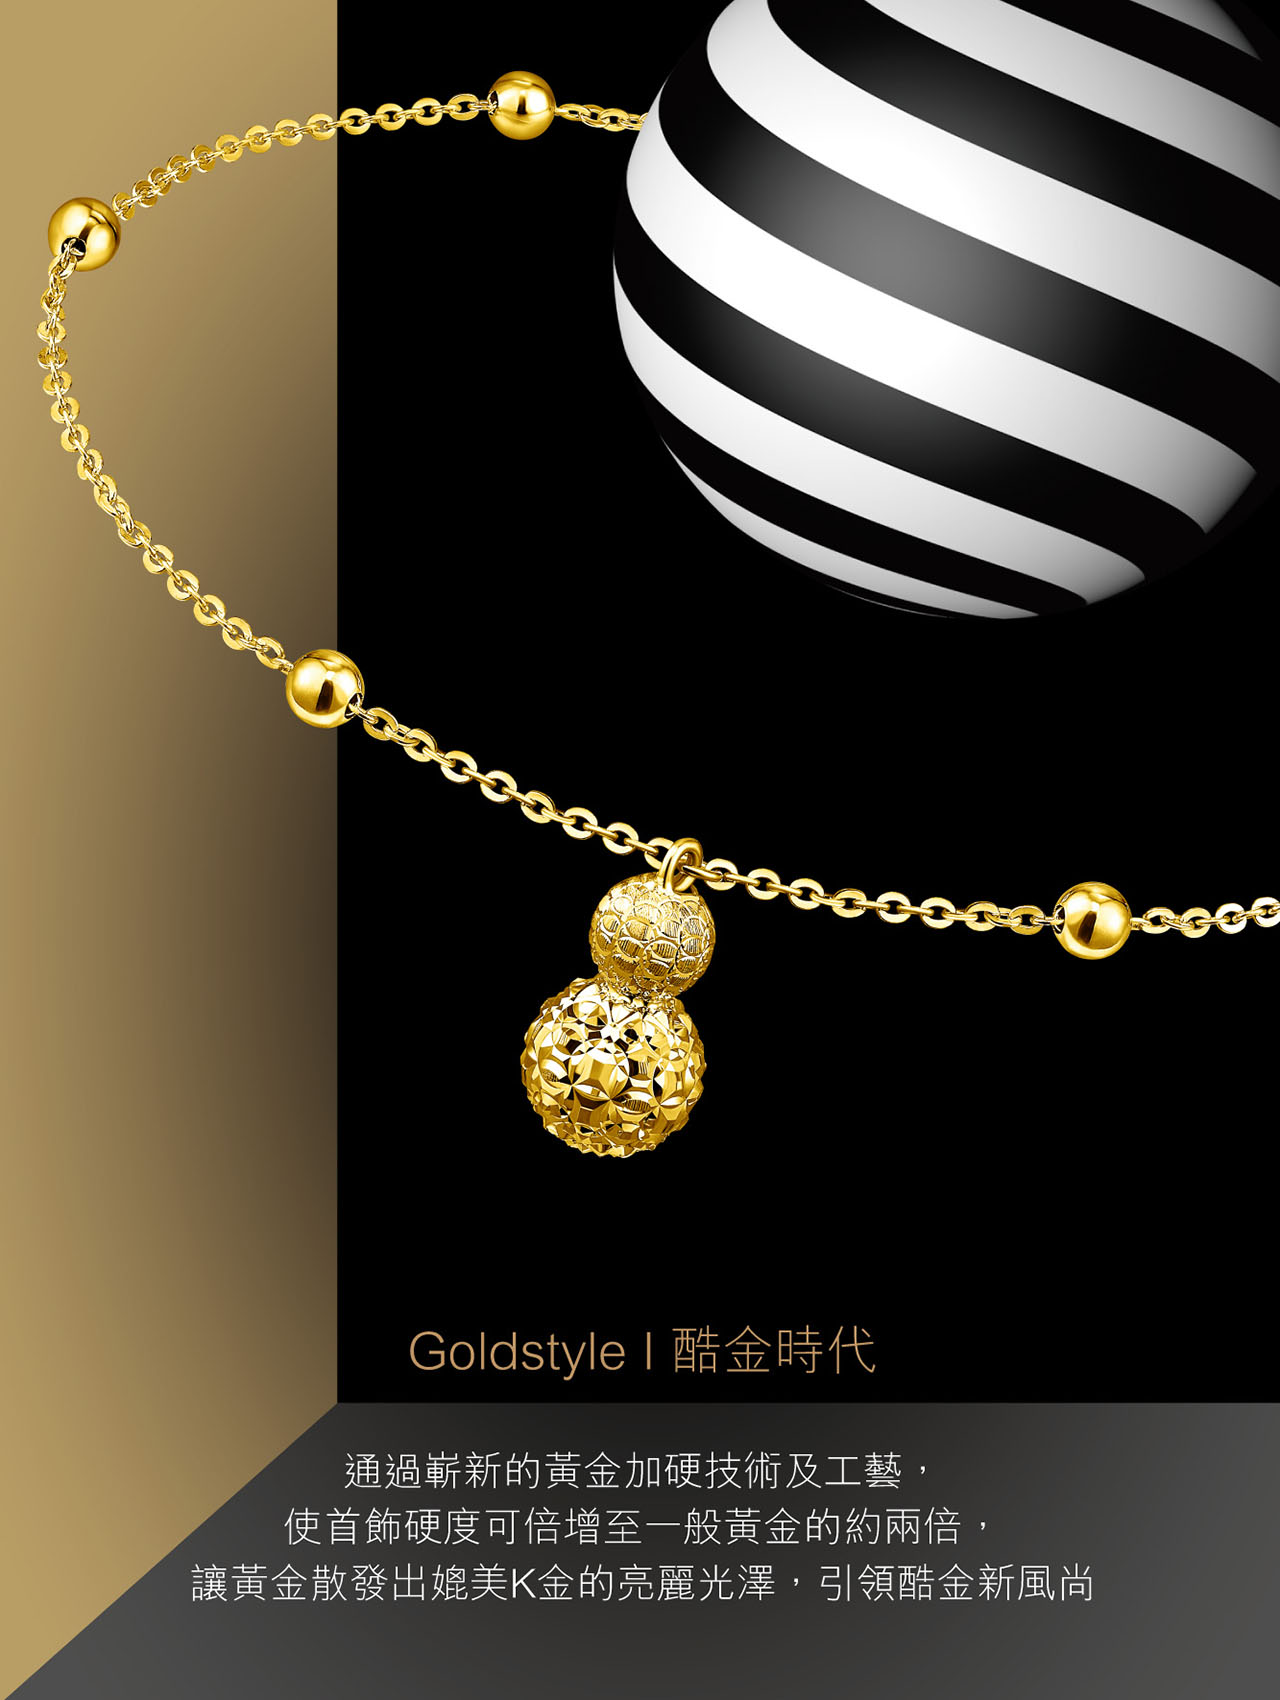 Goldstyle